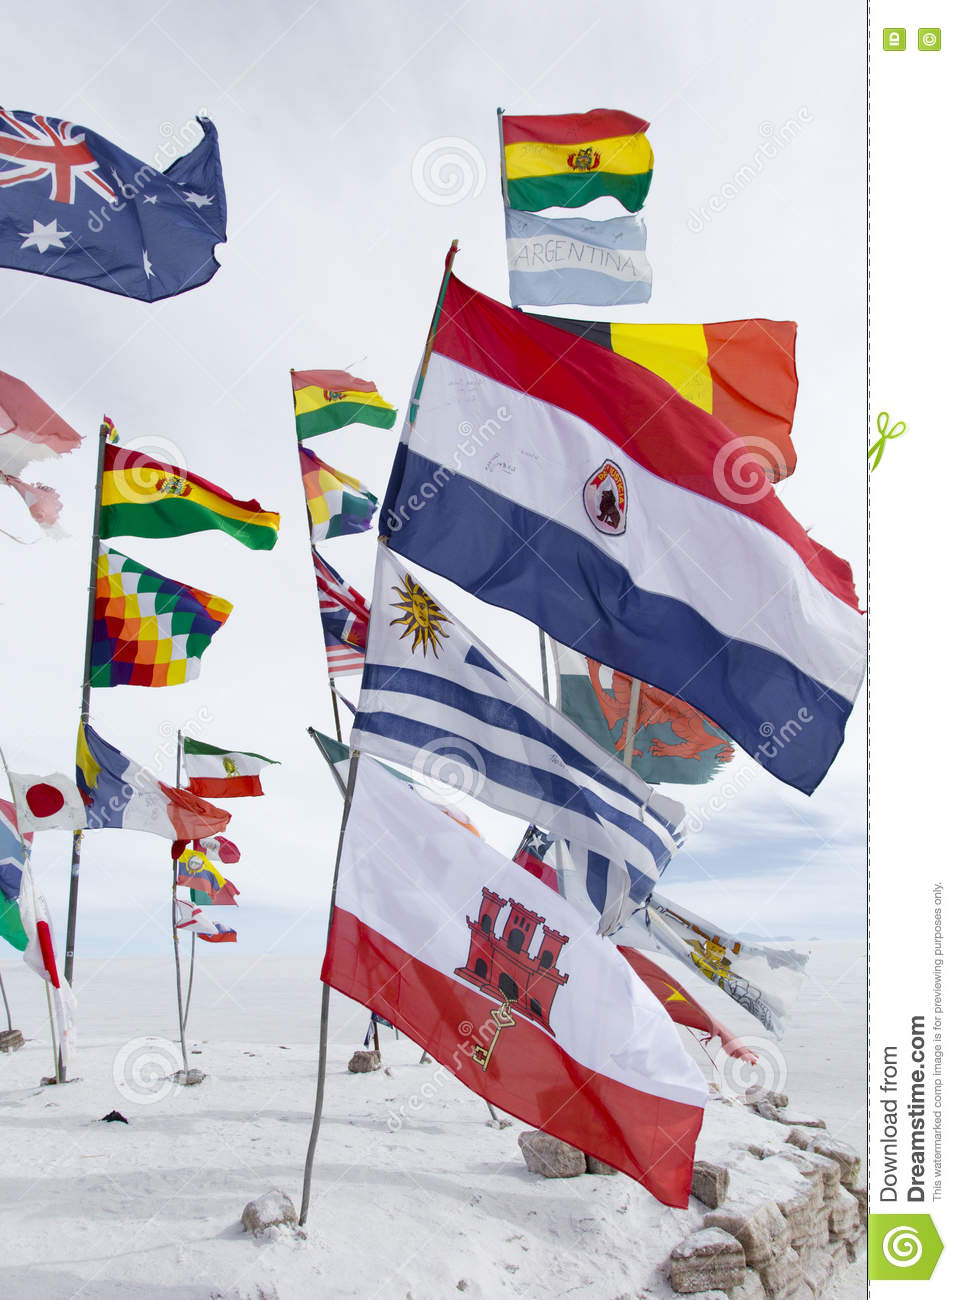 map of bolivia world.html with Bolivia World on Miss World 2011 News Update Miss World likewise Tribal Headdresses From Around World moreover Children Of The World Clip Art Central America children Of The World besides Seminary Enrollment Around World also Flagsoftheworld.